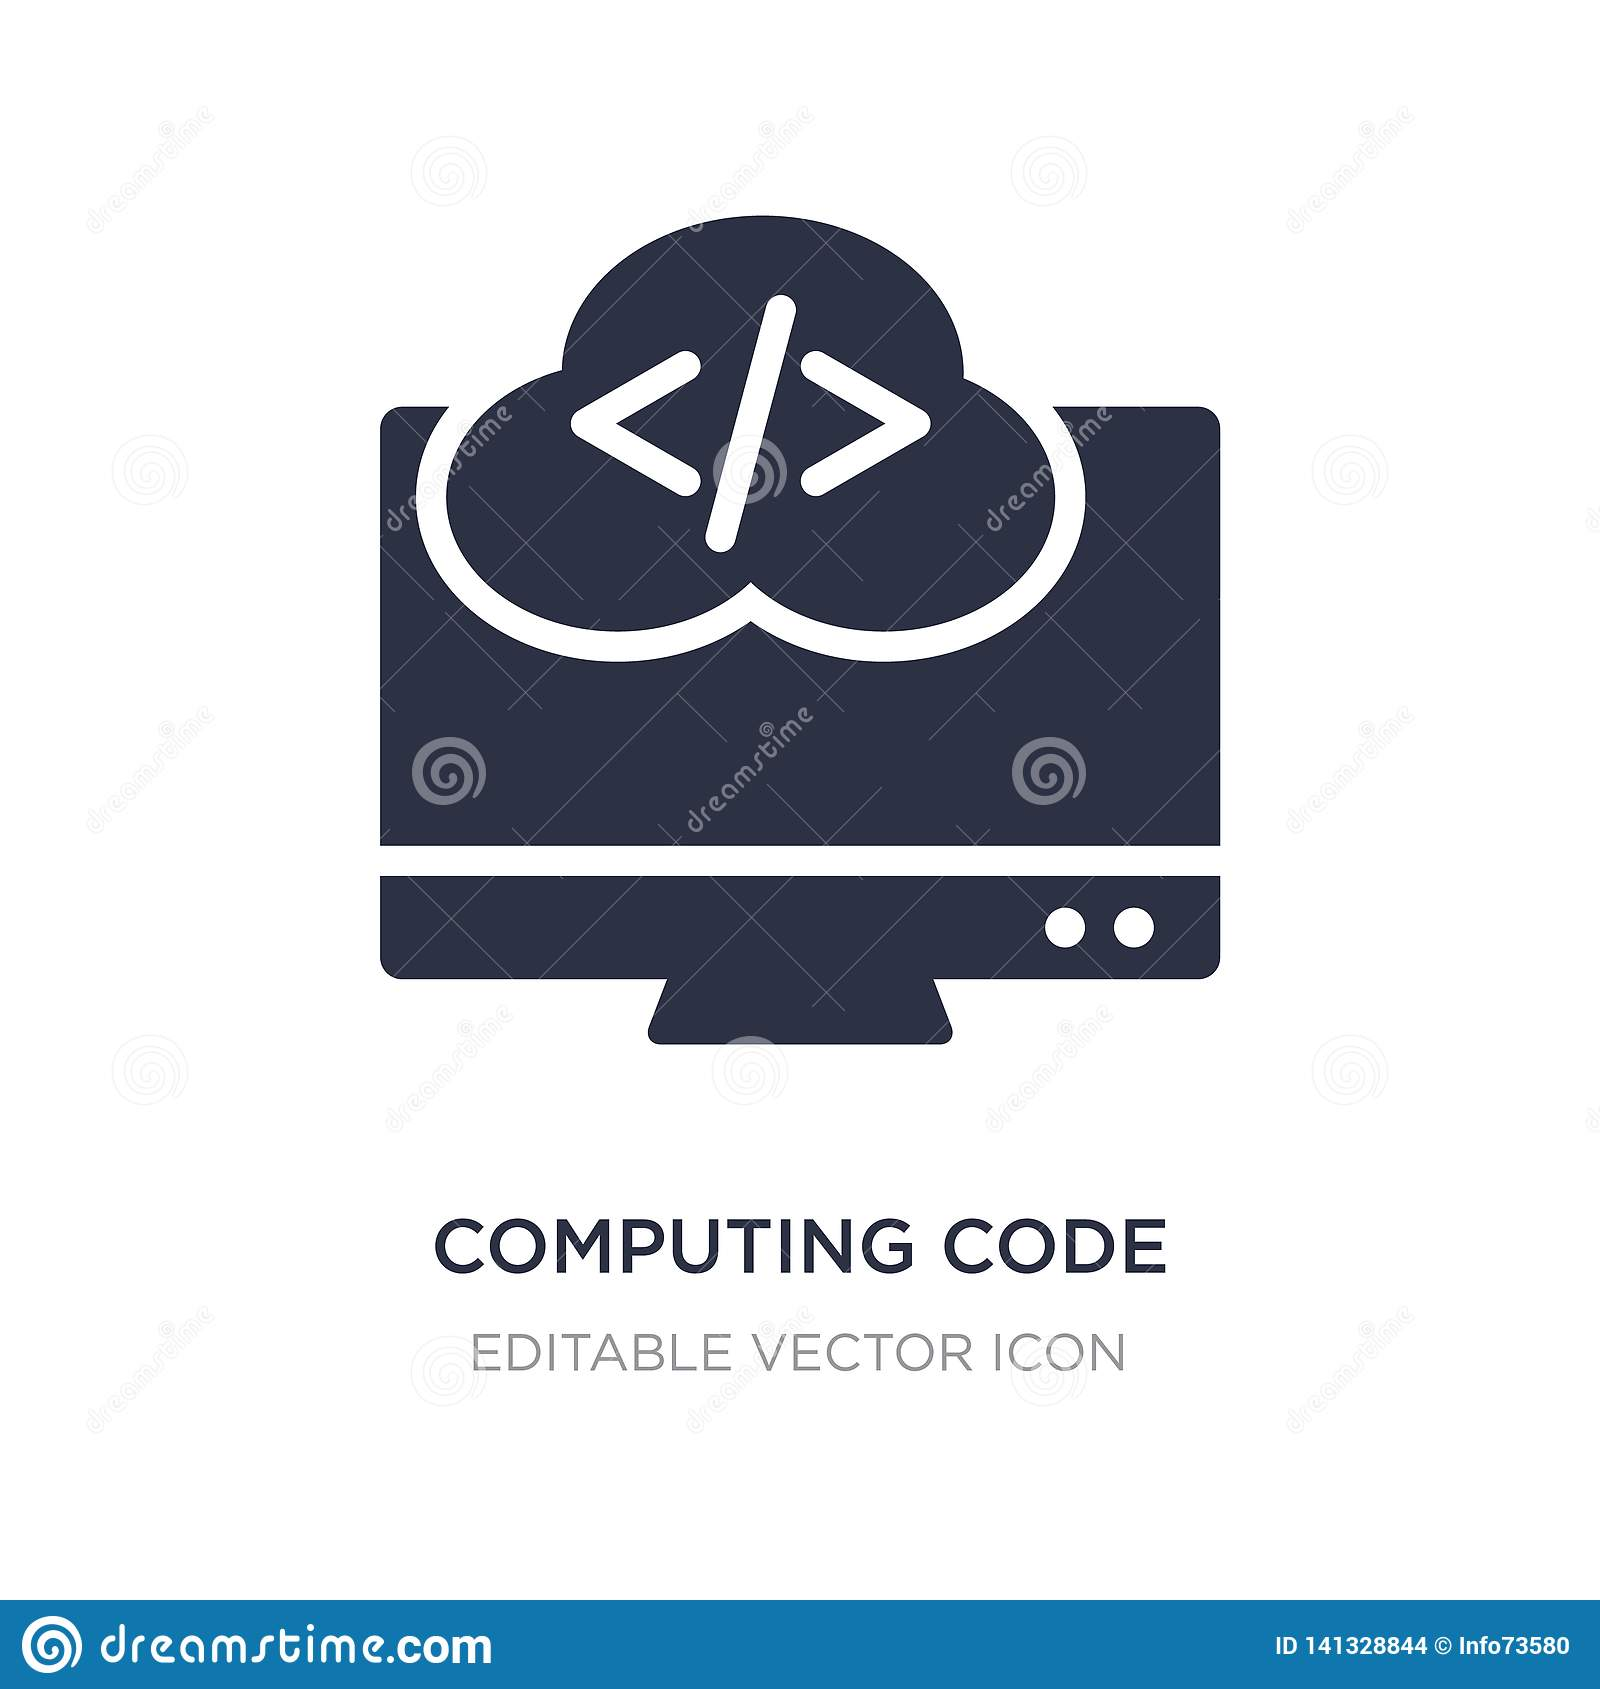 computing code icon on white background. Simple element illustration from Computer concept